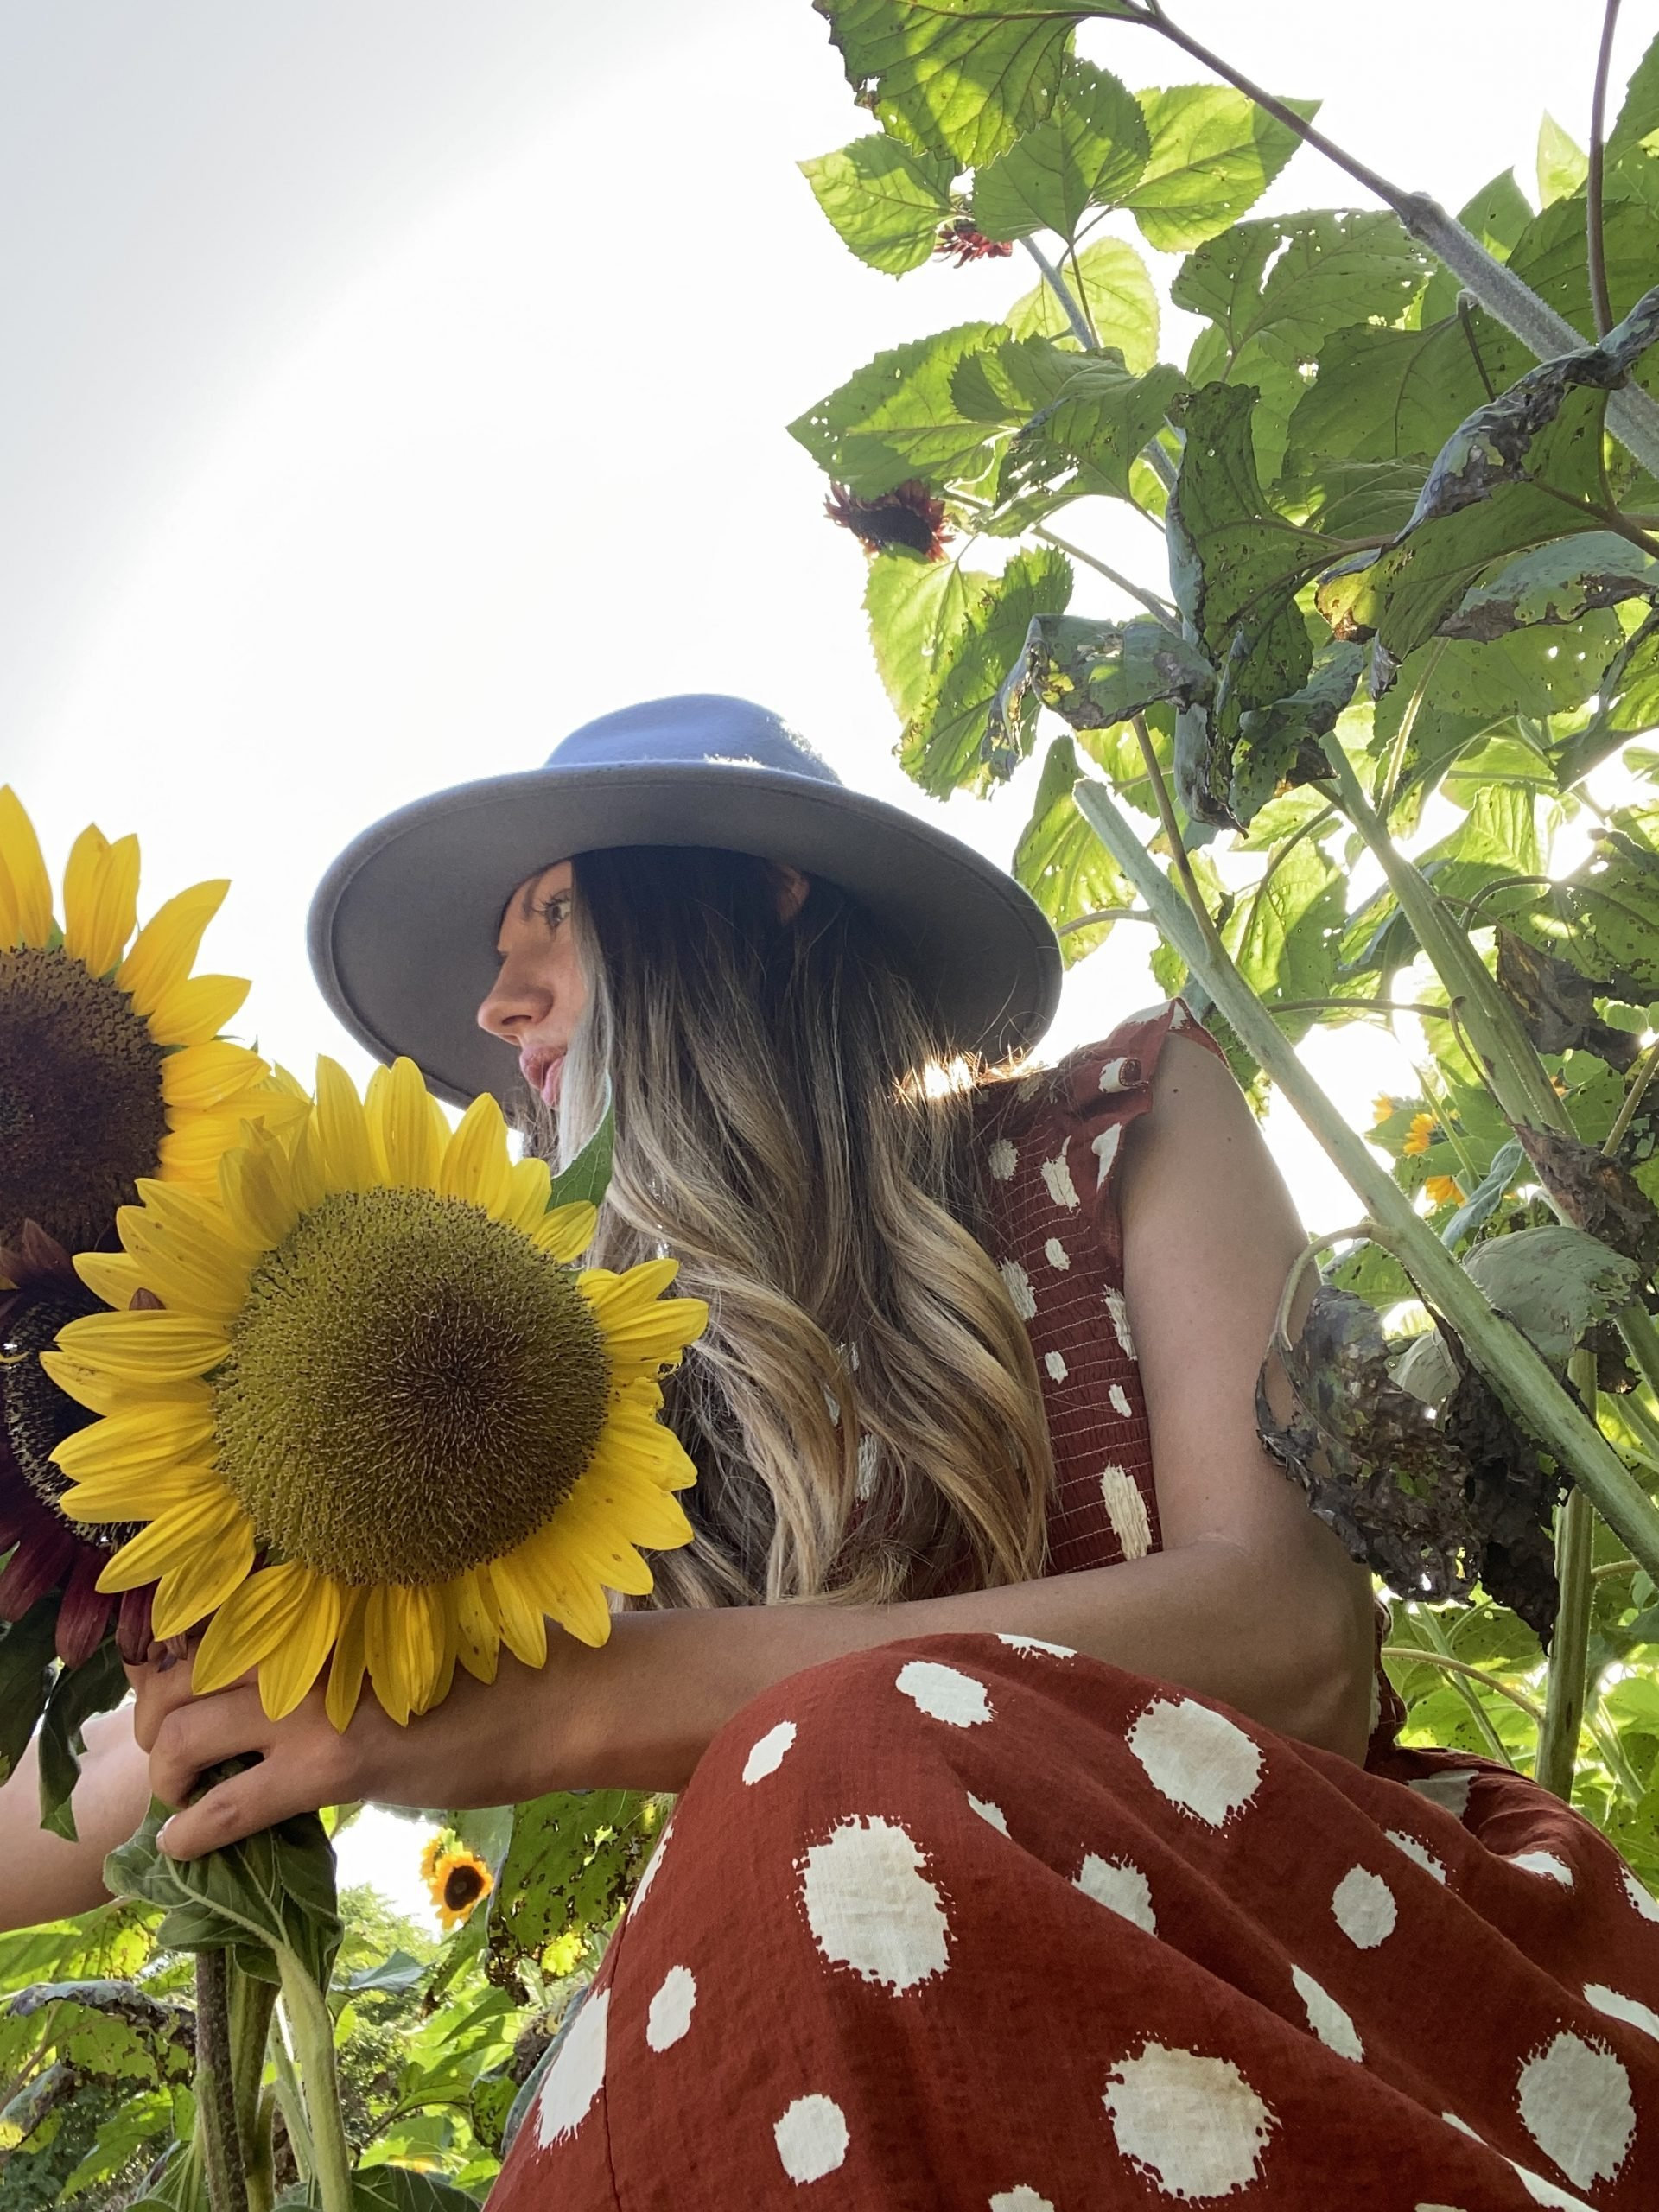 Lifestyle Blogger Chocolate & Lace shares her trip to Sunflower Fields near Philadelphia.